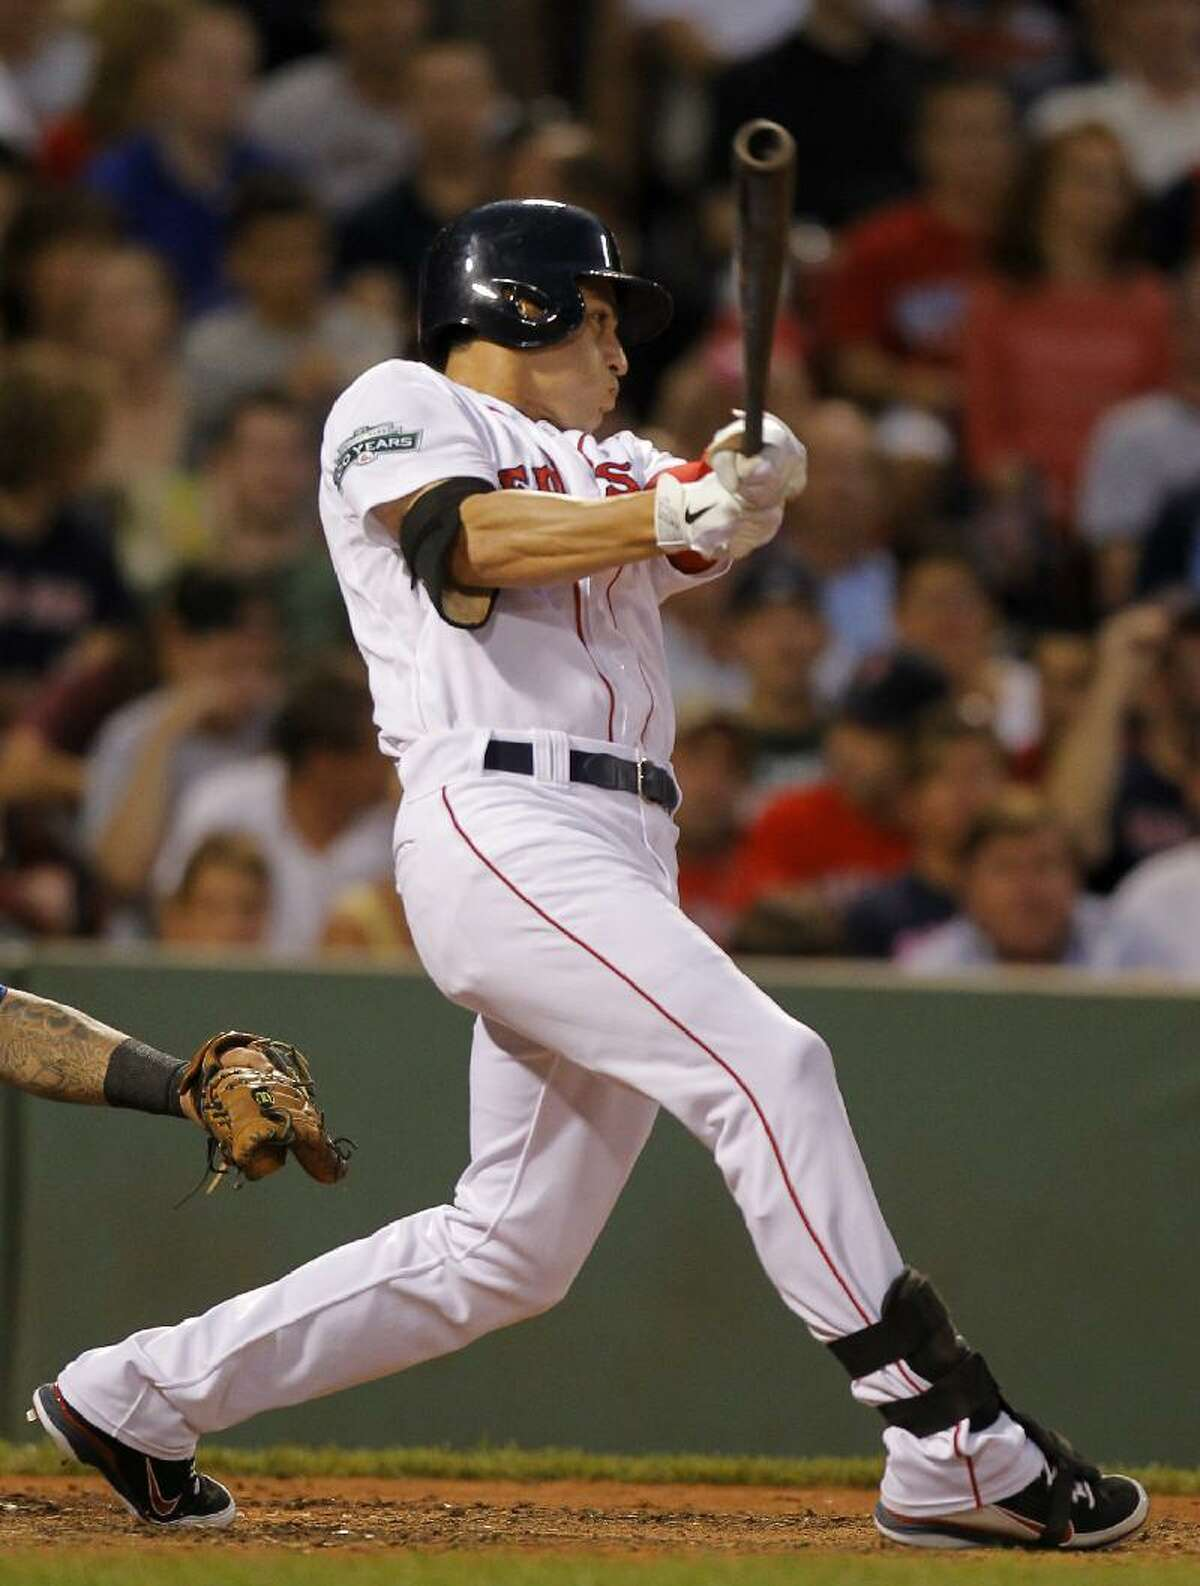 ASSOCIATED PRESS Boston Red Sox's Jacoby Ellsbury doubles on a pitch by Texas Rangers' Yu Darvish in the third inning of Monday's game at Fenway Park in Boston. The Red Sox won 9-2.